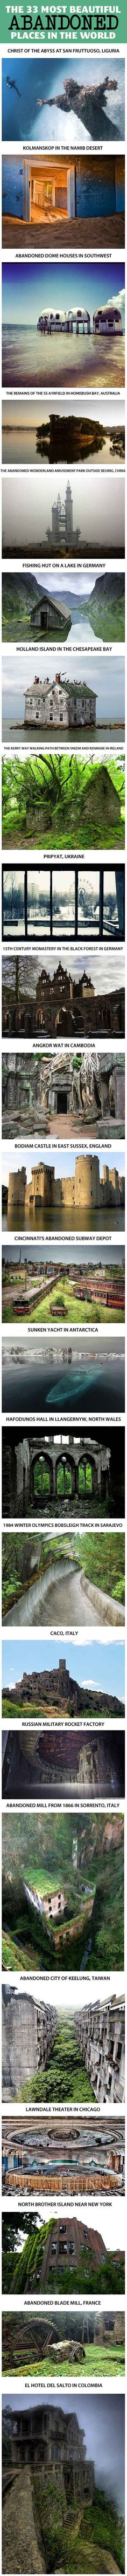 33 abandoned places..